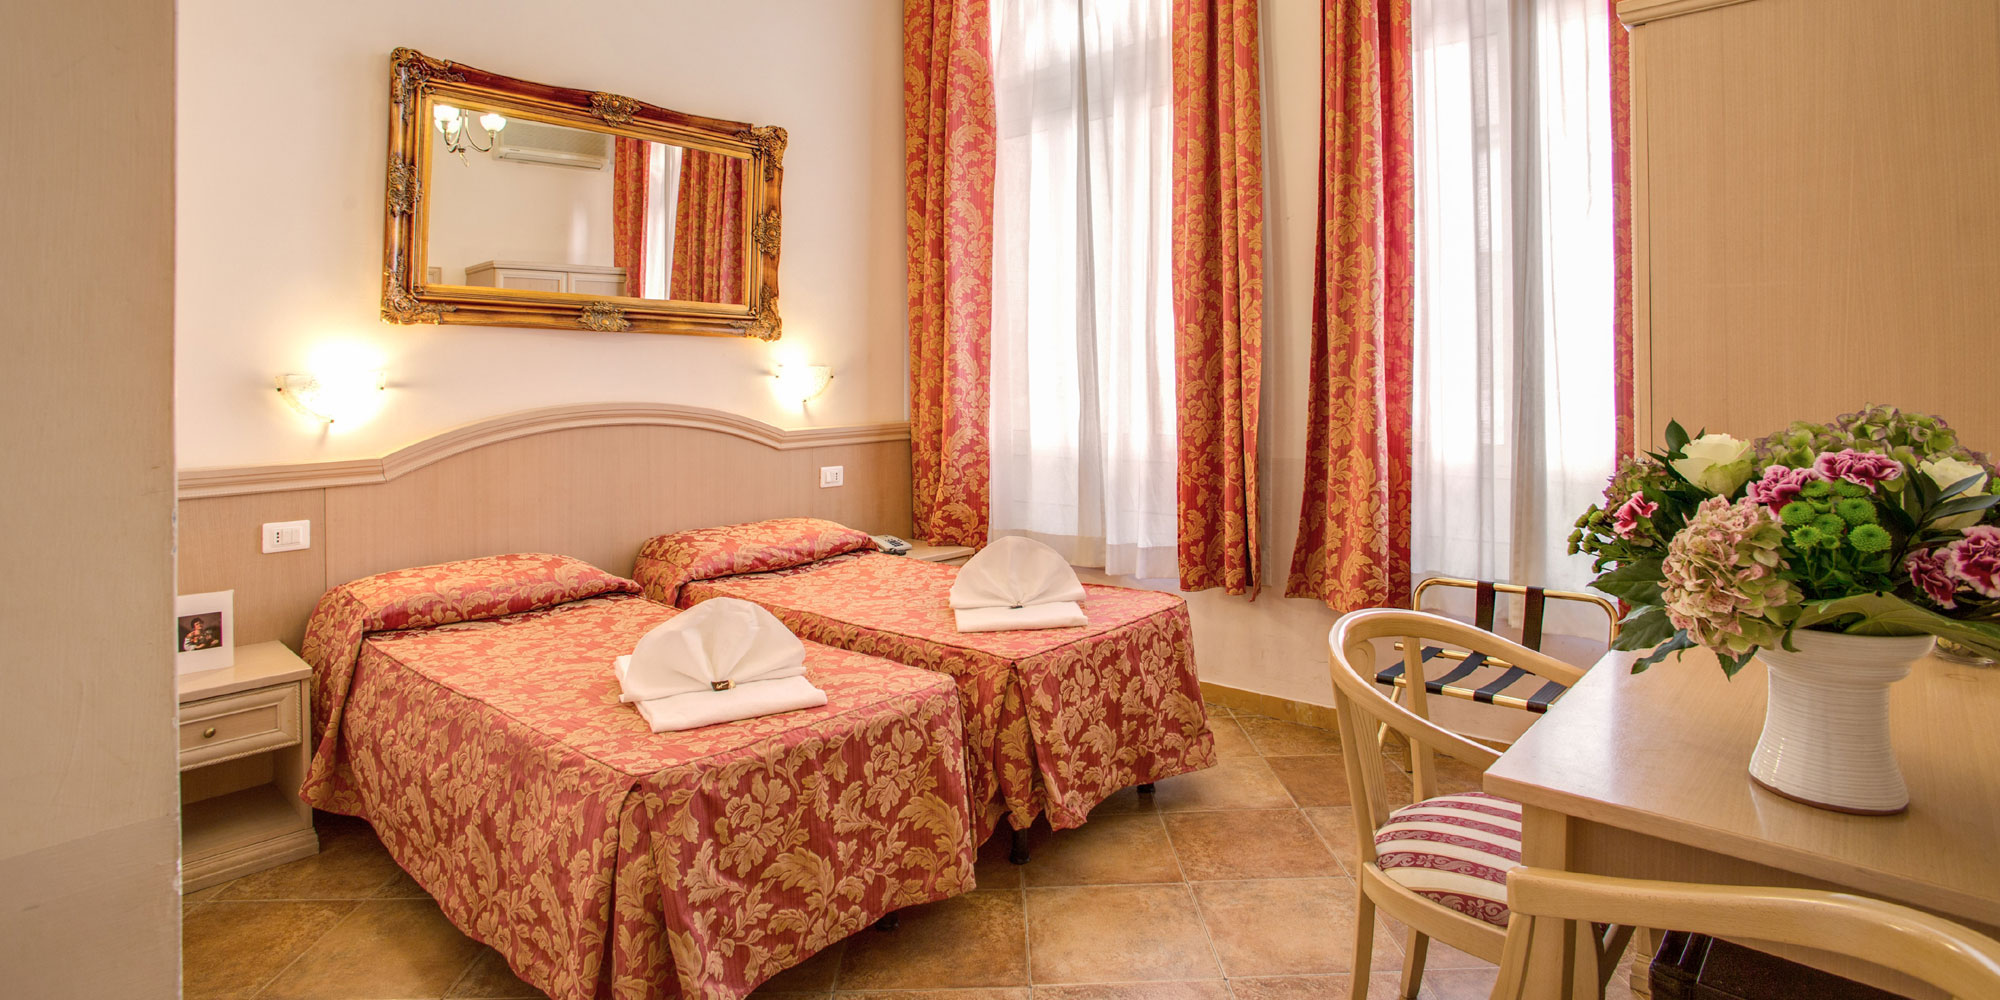 Hotel Caravaggio Rome - Our Facilities